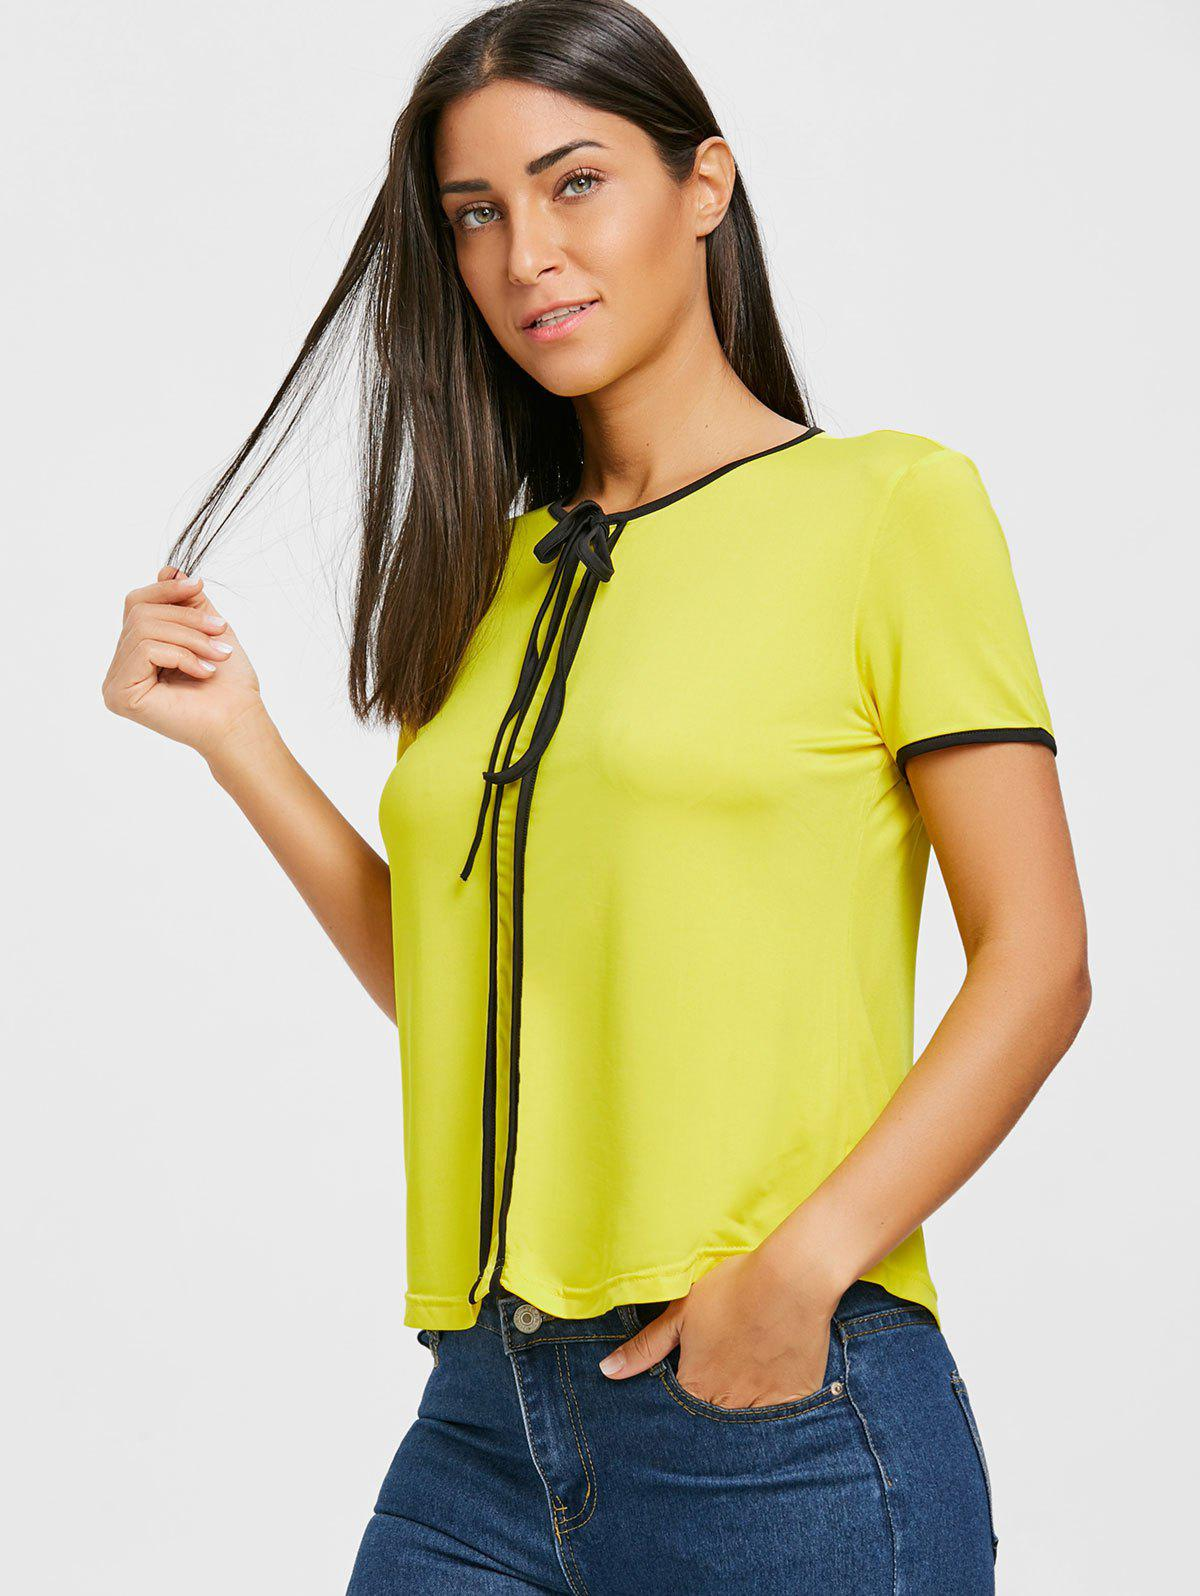 Contrast Trim Self Tie Blouse - YELLOW XL